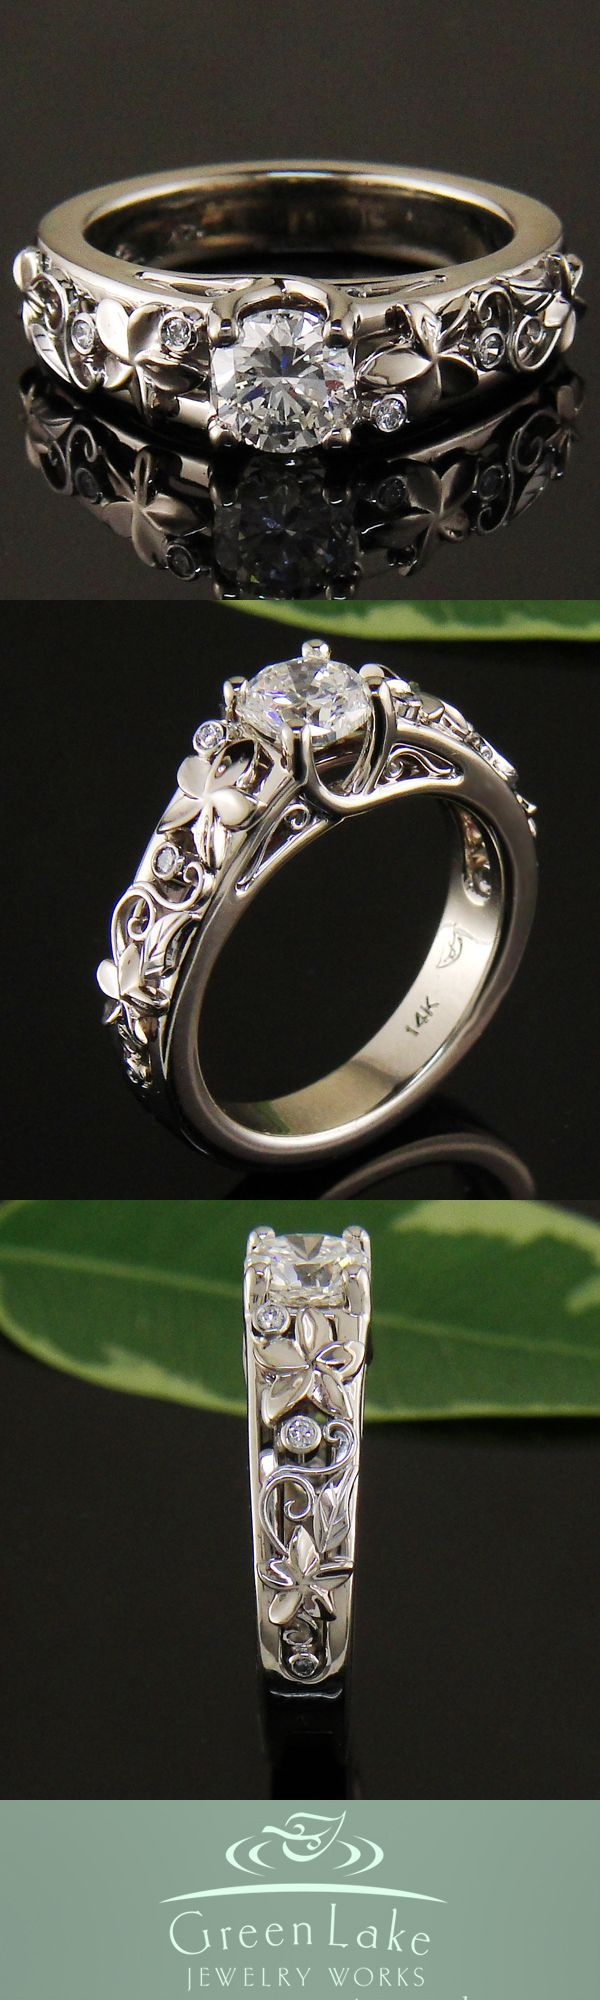 custom 14k white gold plumeria ring with diamond center stone jewelry and watches pinterest. Black Bedroom Furniture Sets. Home Design Ideas